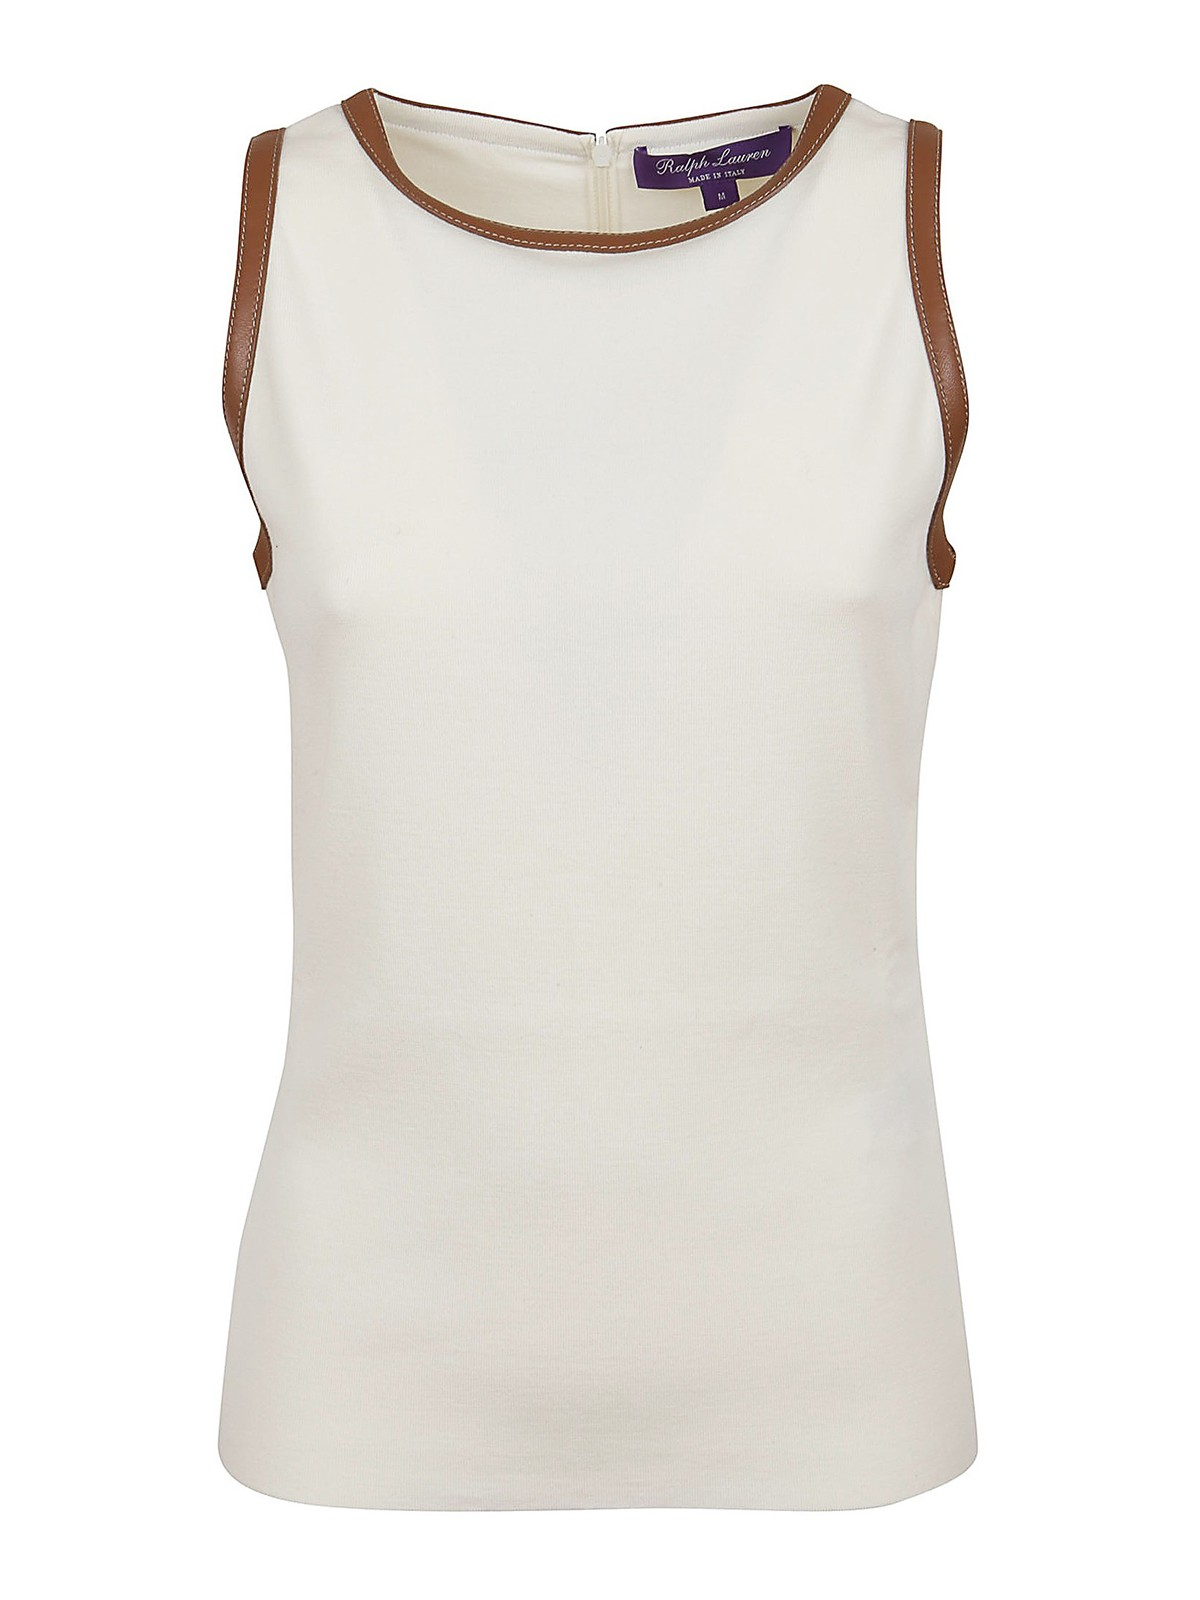 Ralph Lauren LAMBSKIN TRIM TANK TOP